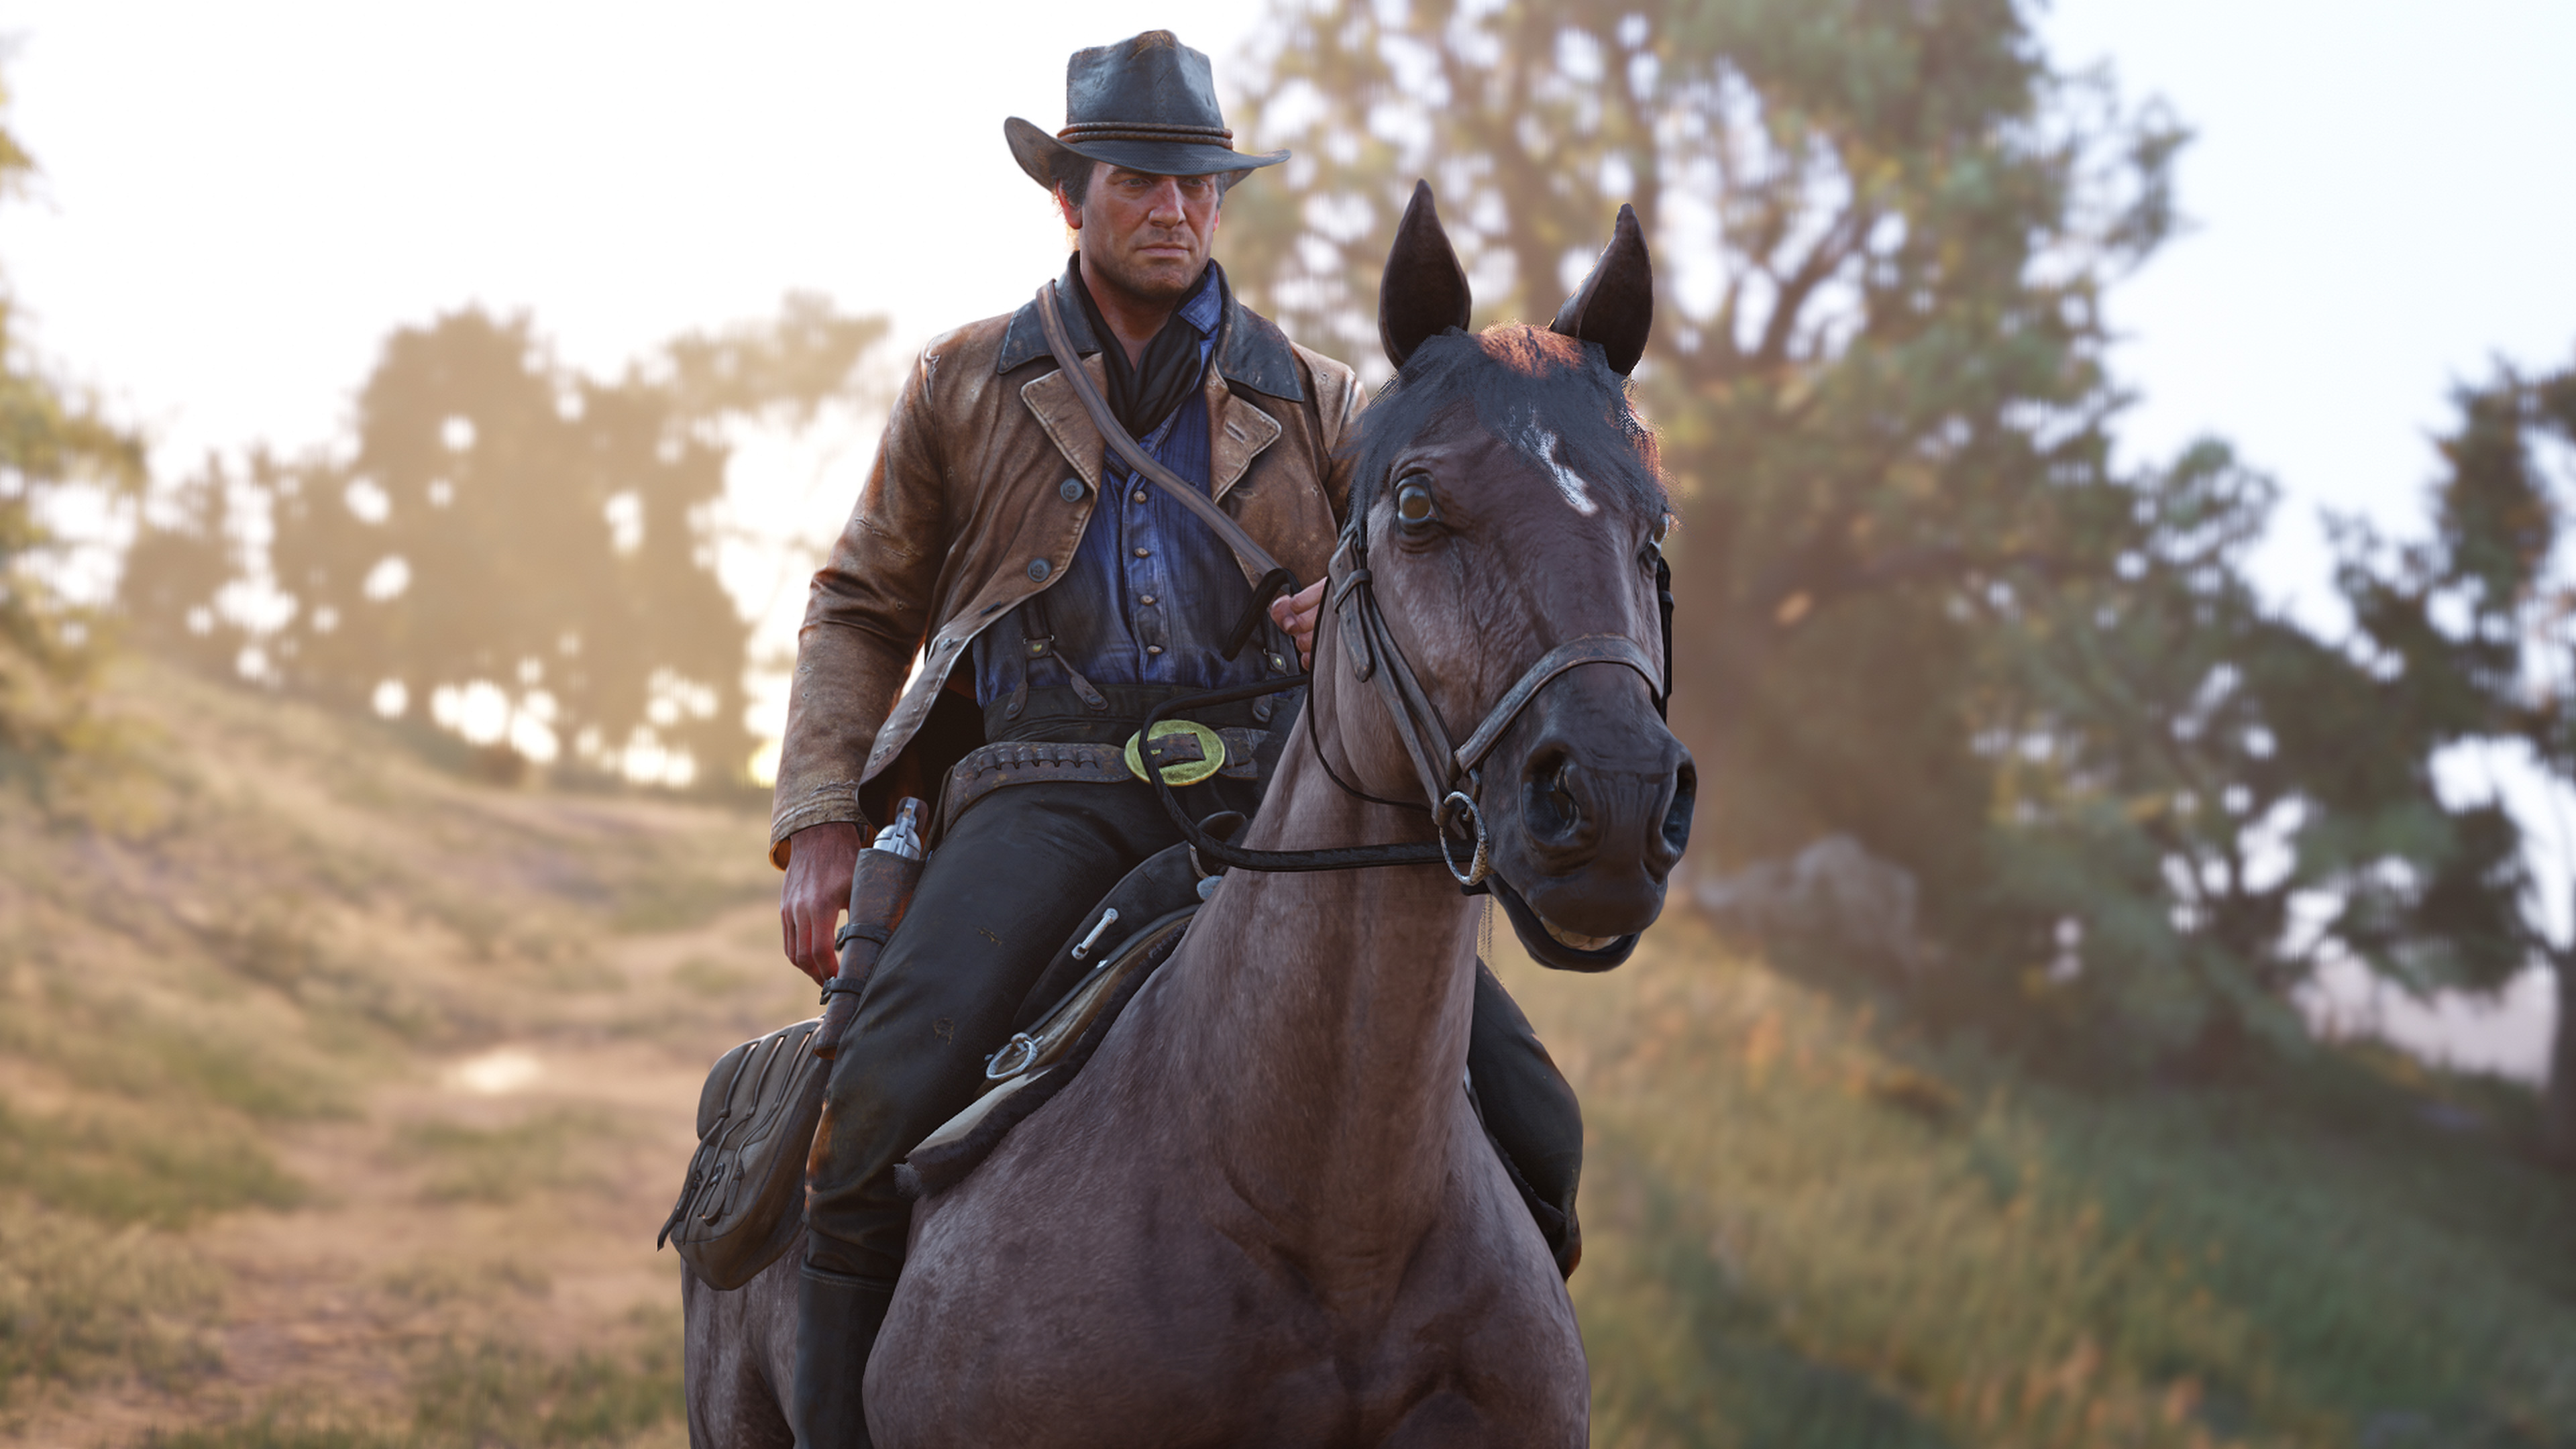 Red Dead Redemption 2's PS4-exclusive content revealed